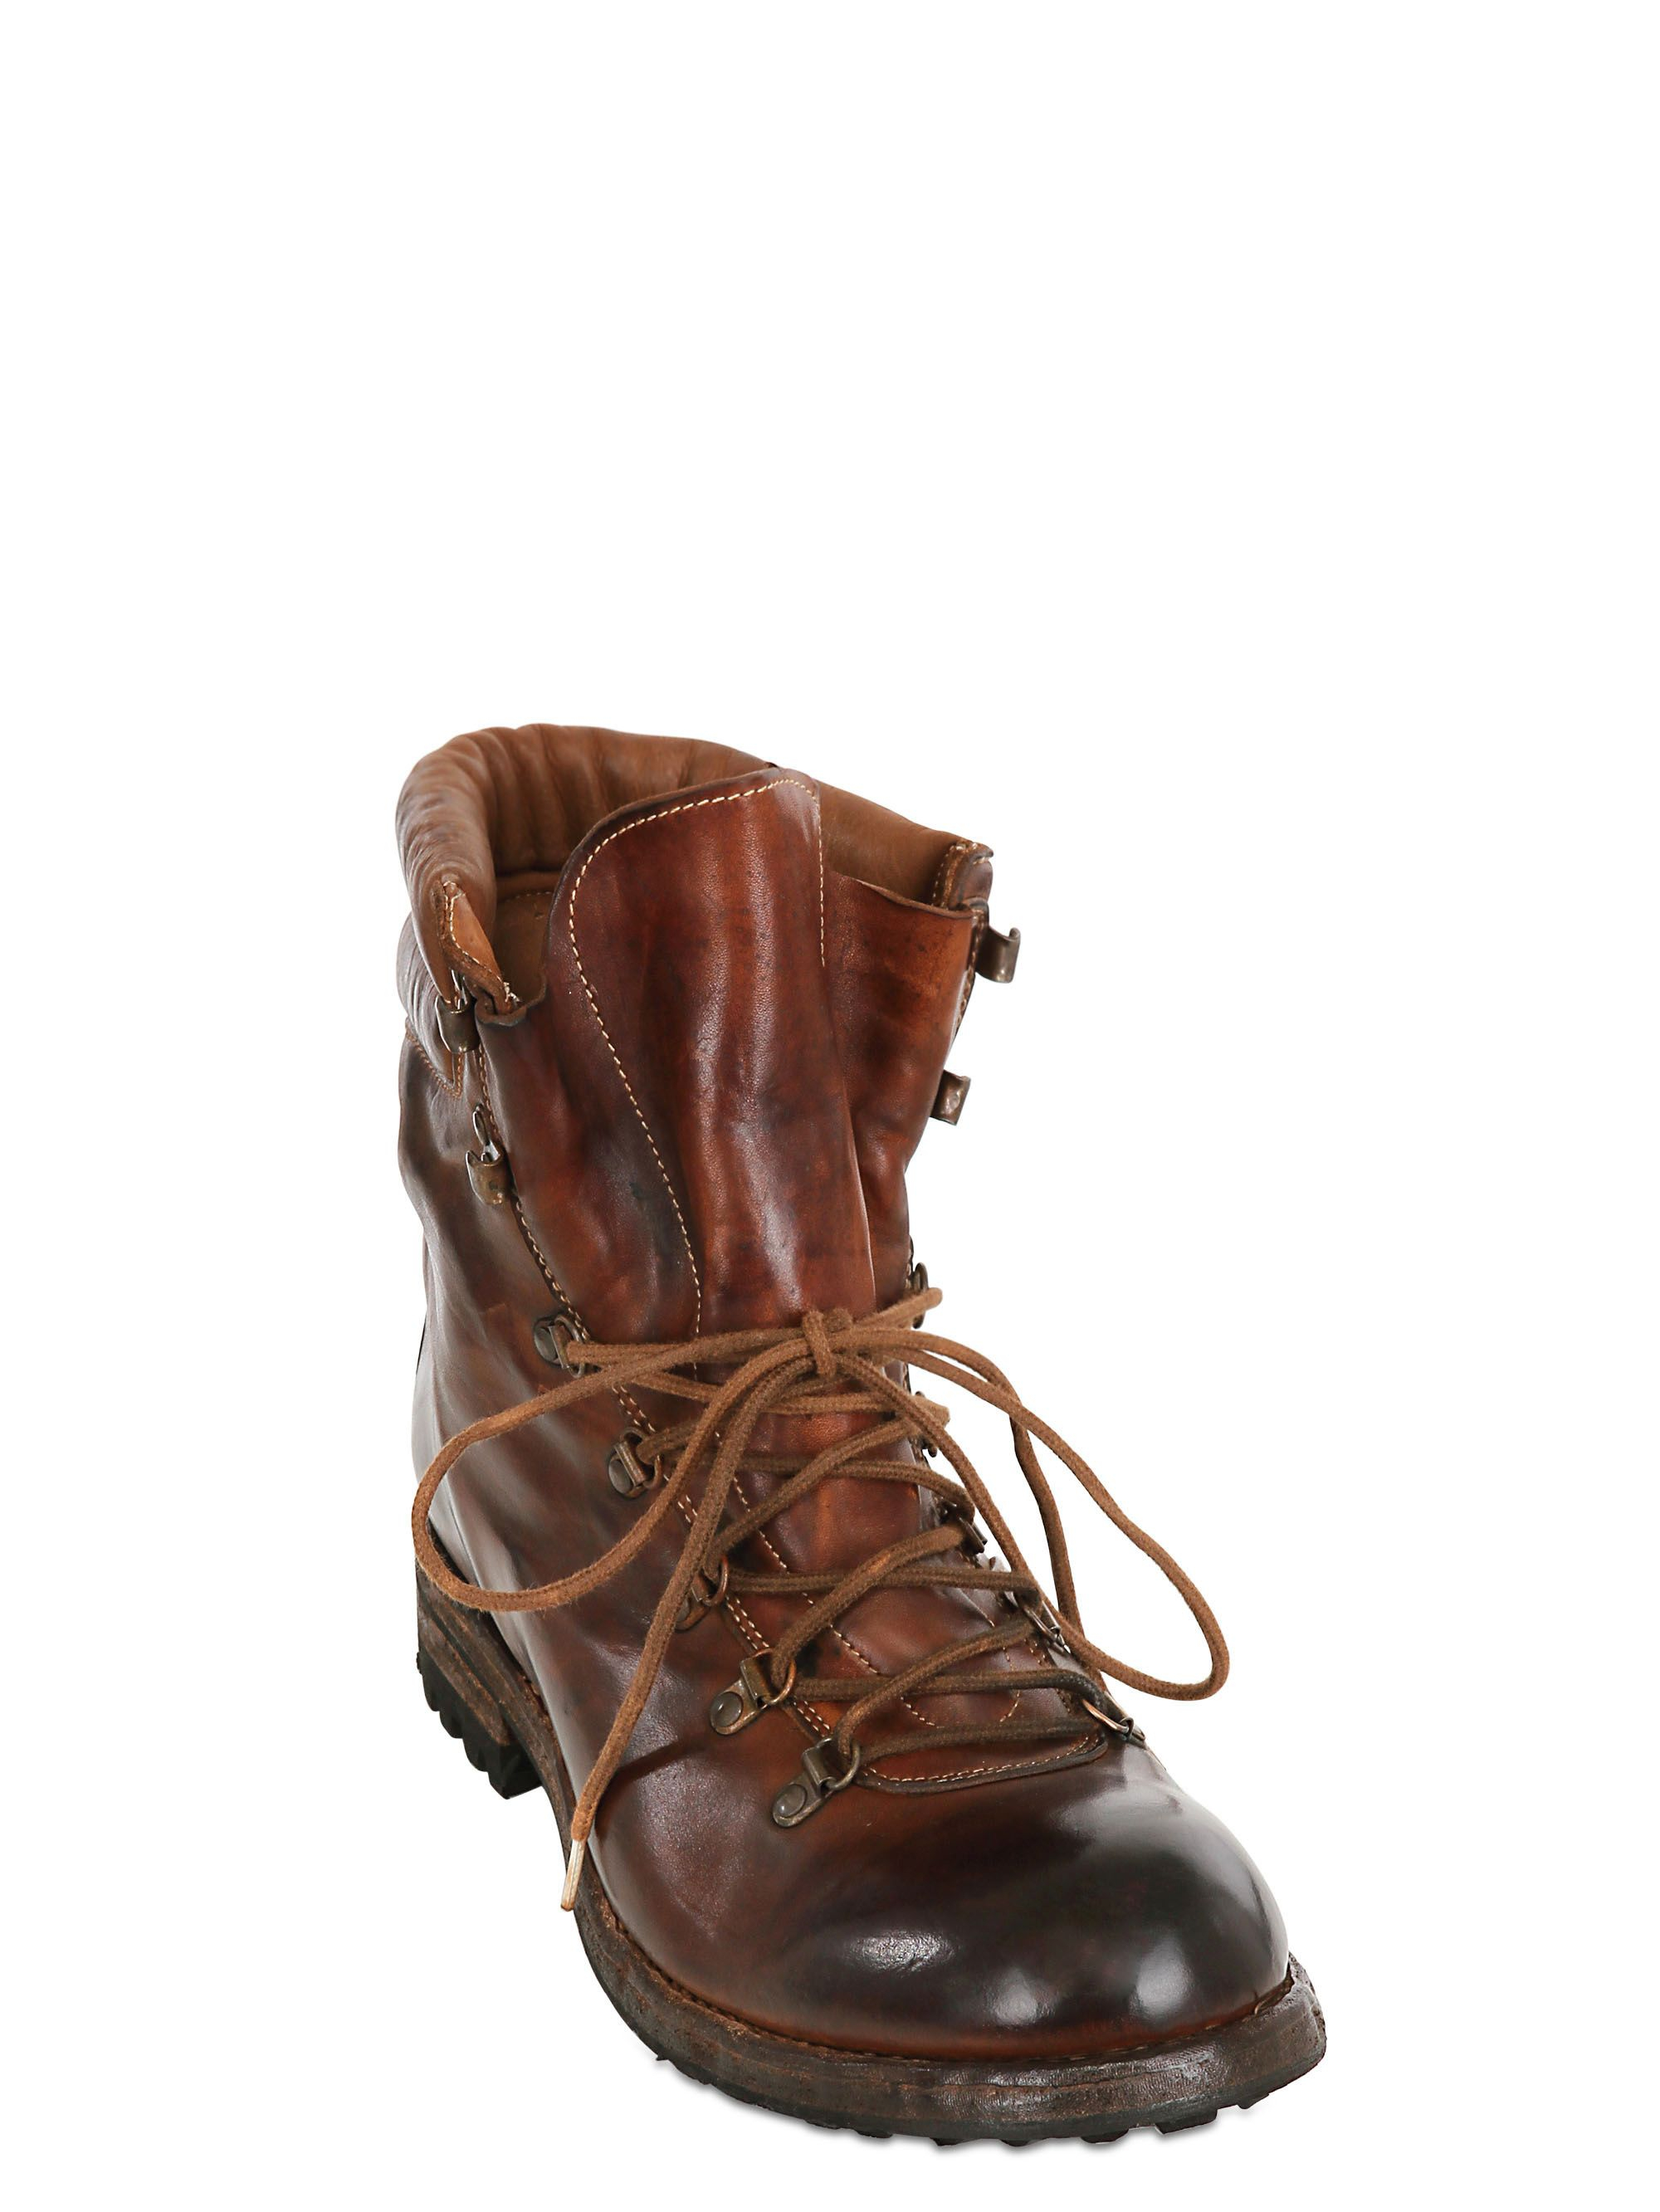 8ea65d9ce0158 Officine Creative Vintaged Washed Leather Boots in Brown for Men - Lyst